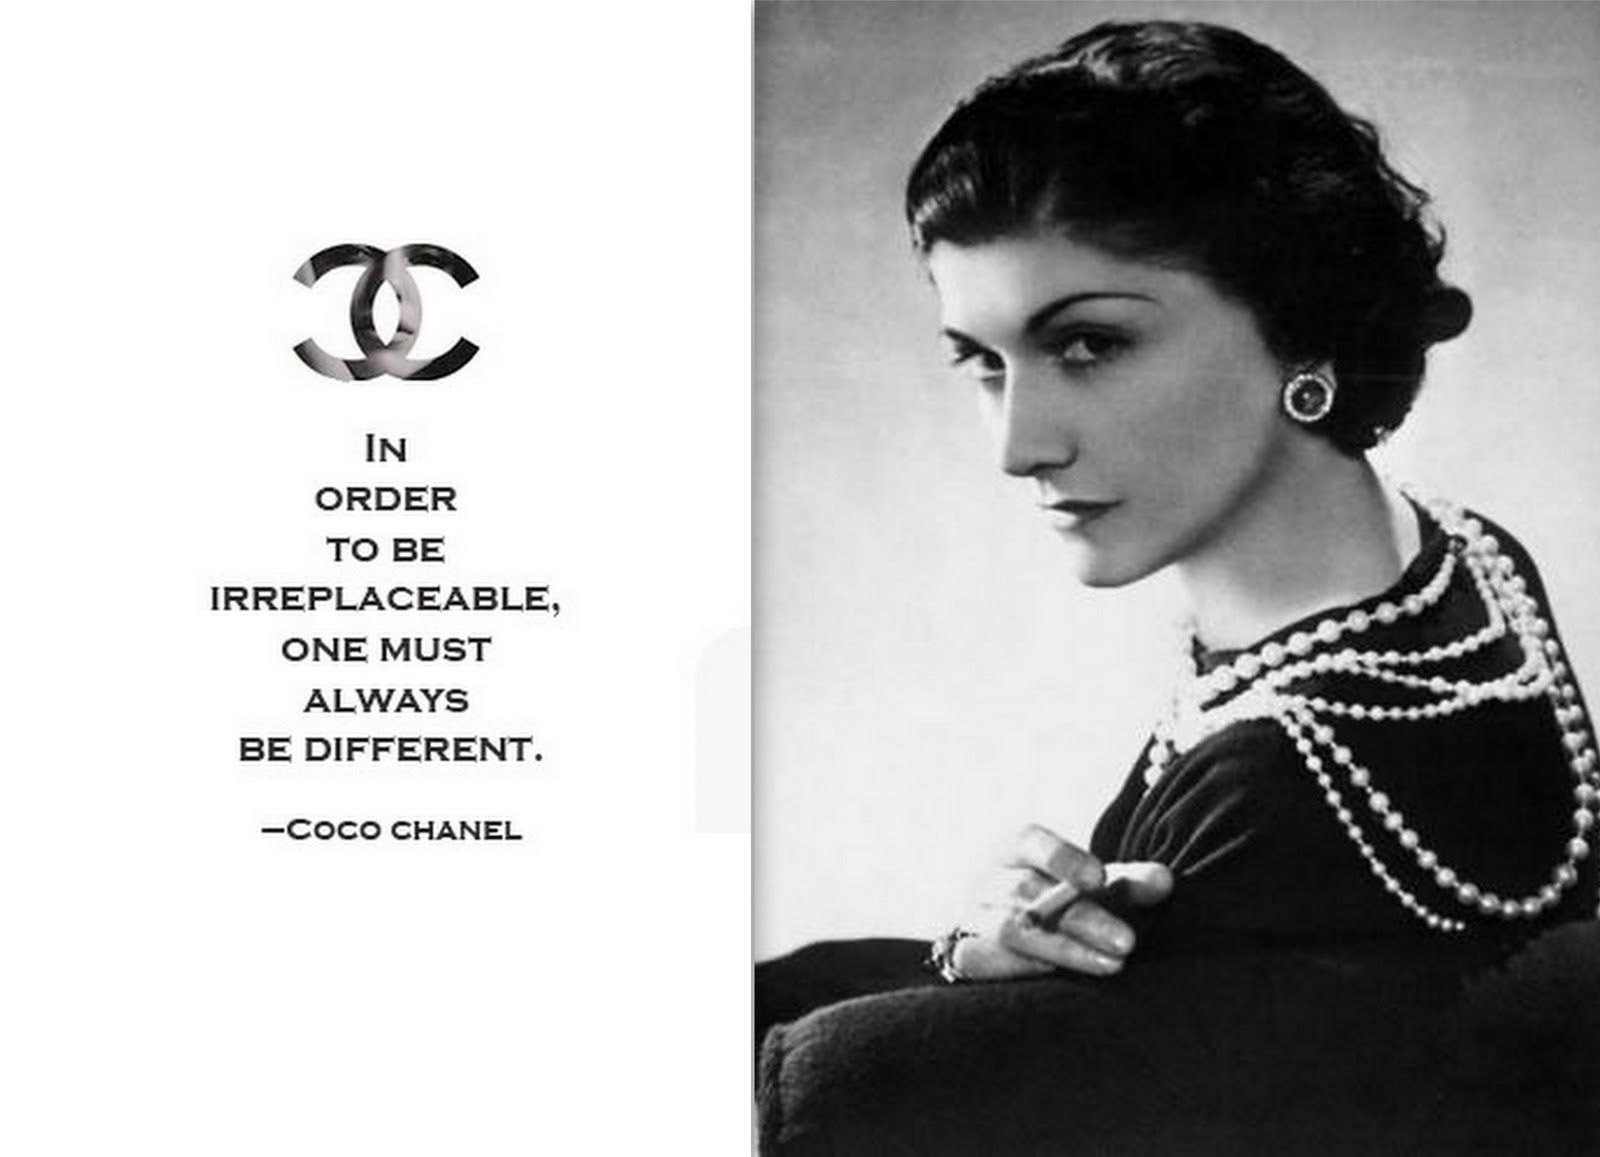 17 Best images about Coco Chanel Quotes on Pinterest | Quotes ...